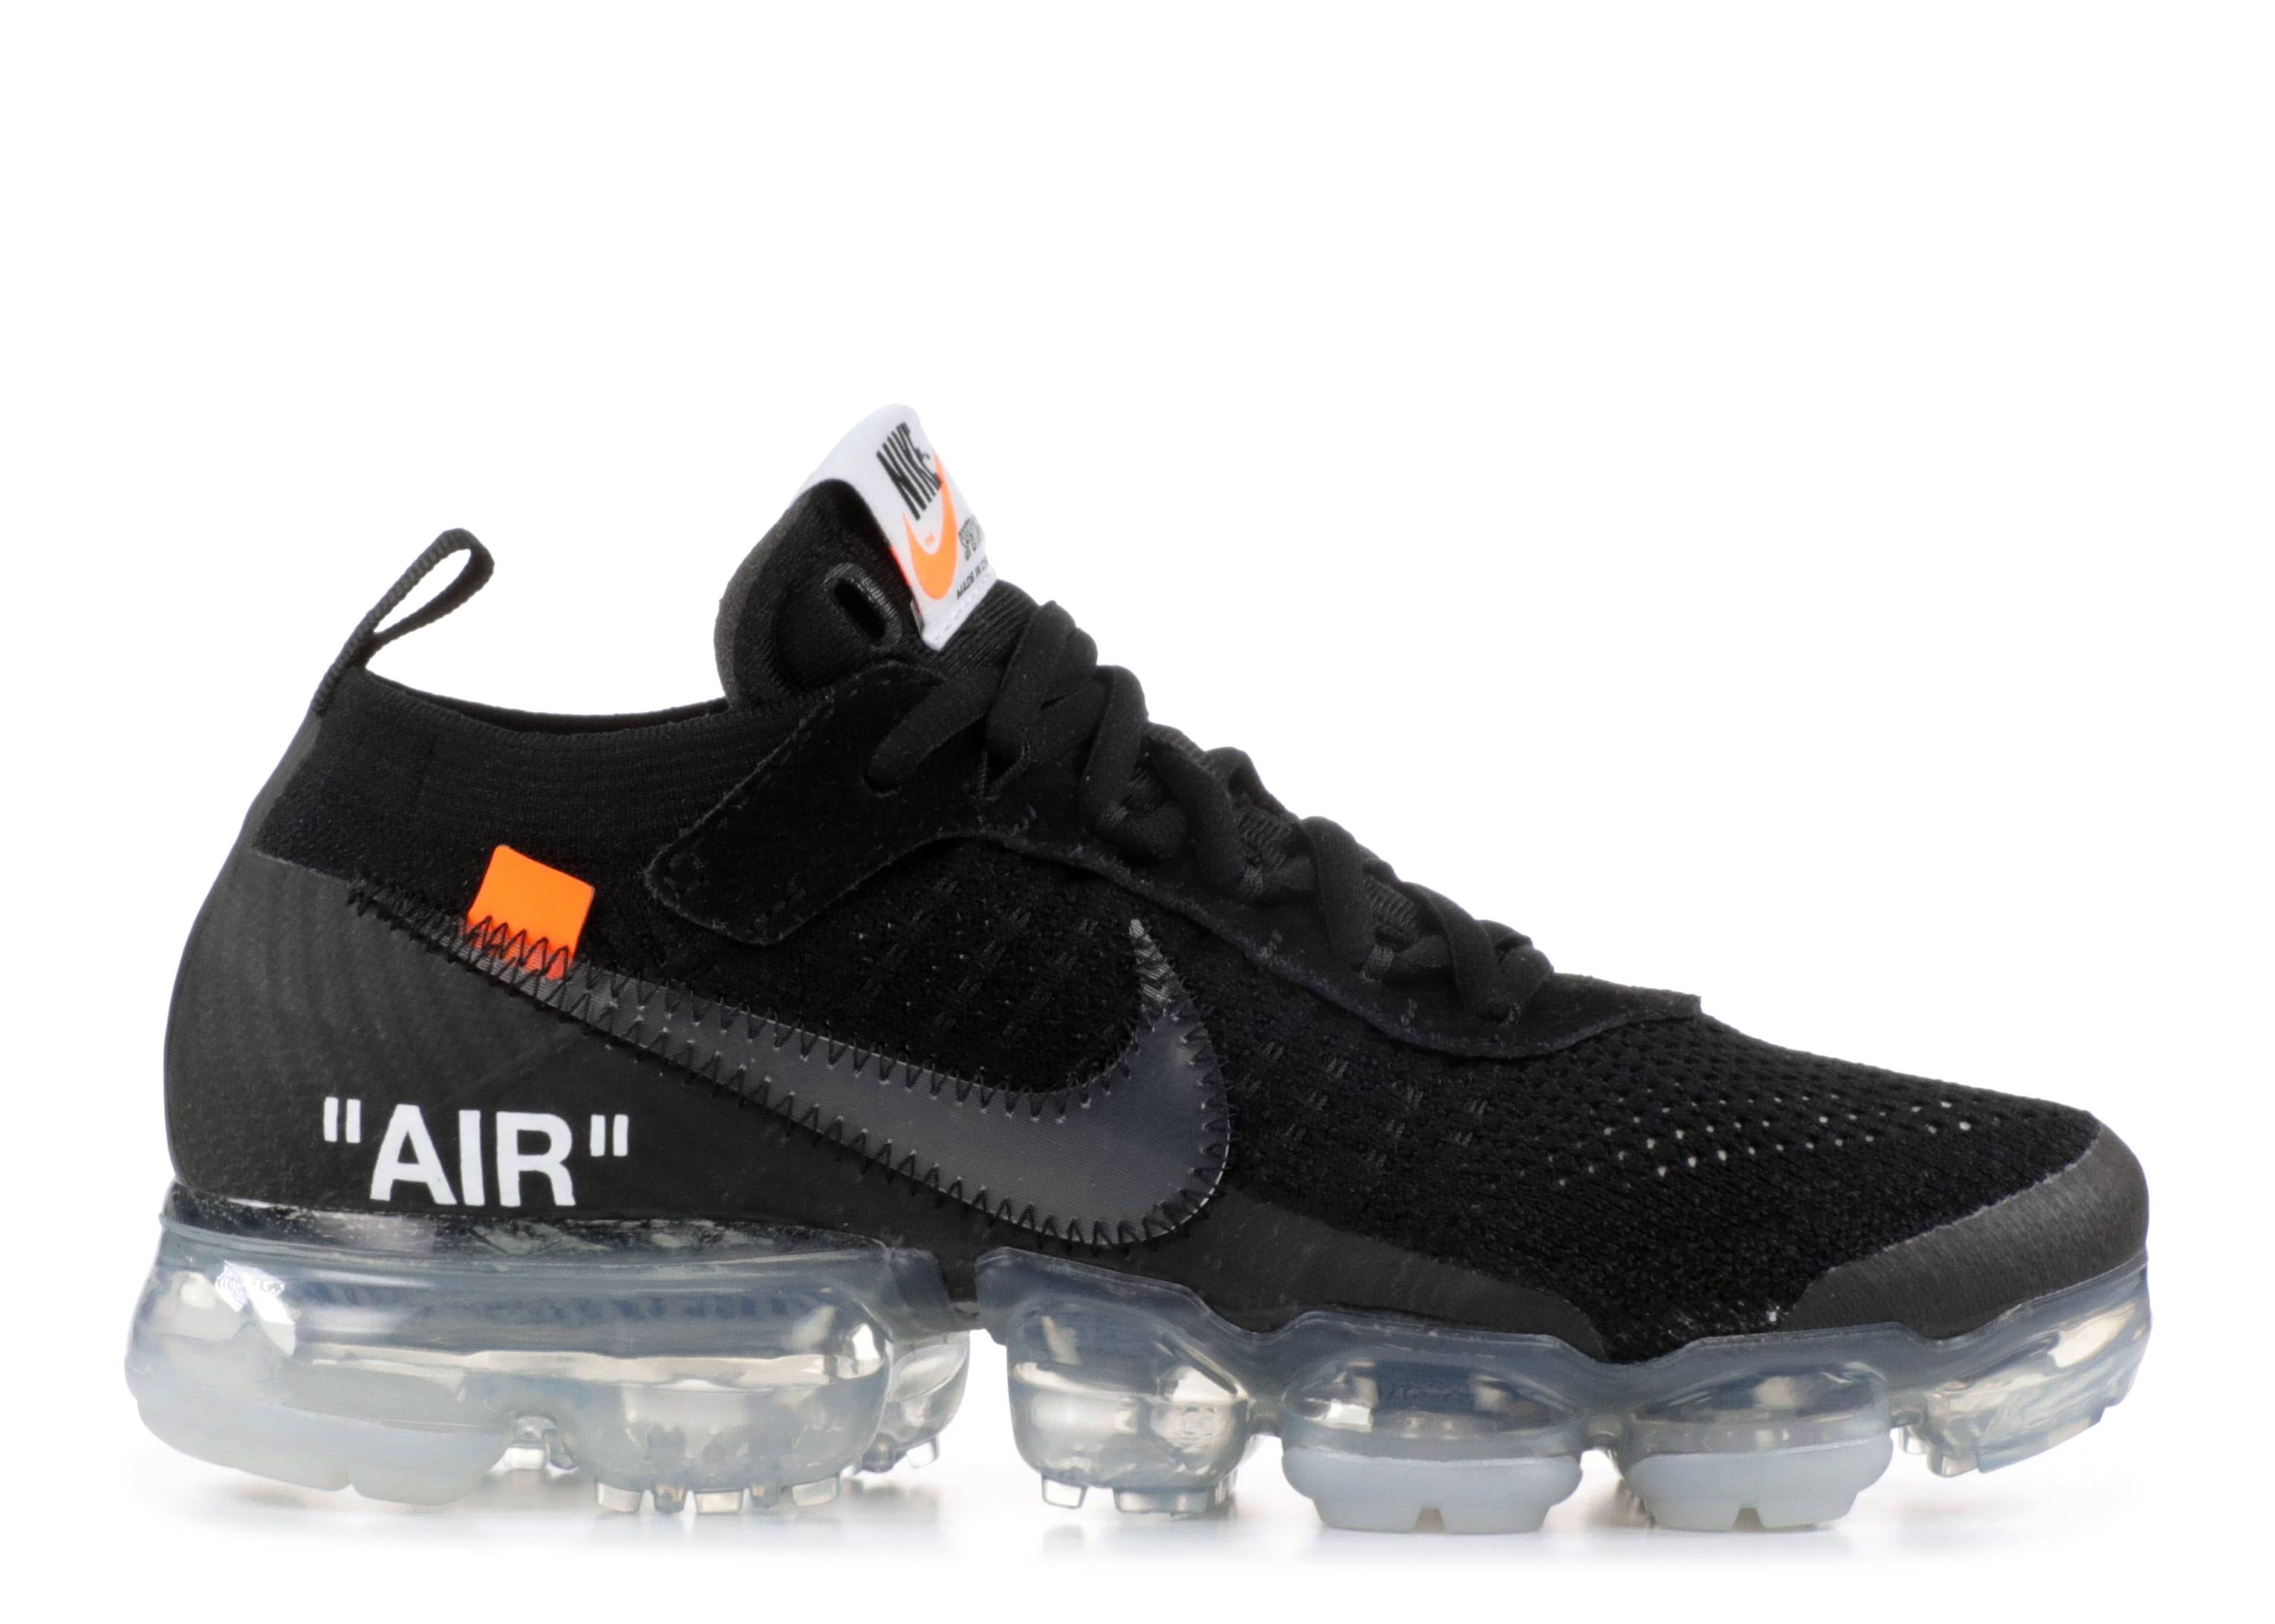 ac0b6325d8 The 10: Nike Air Vapormax Fk